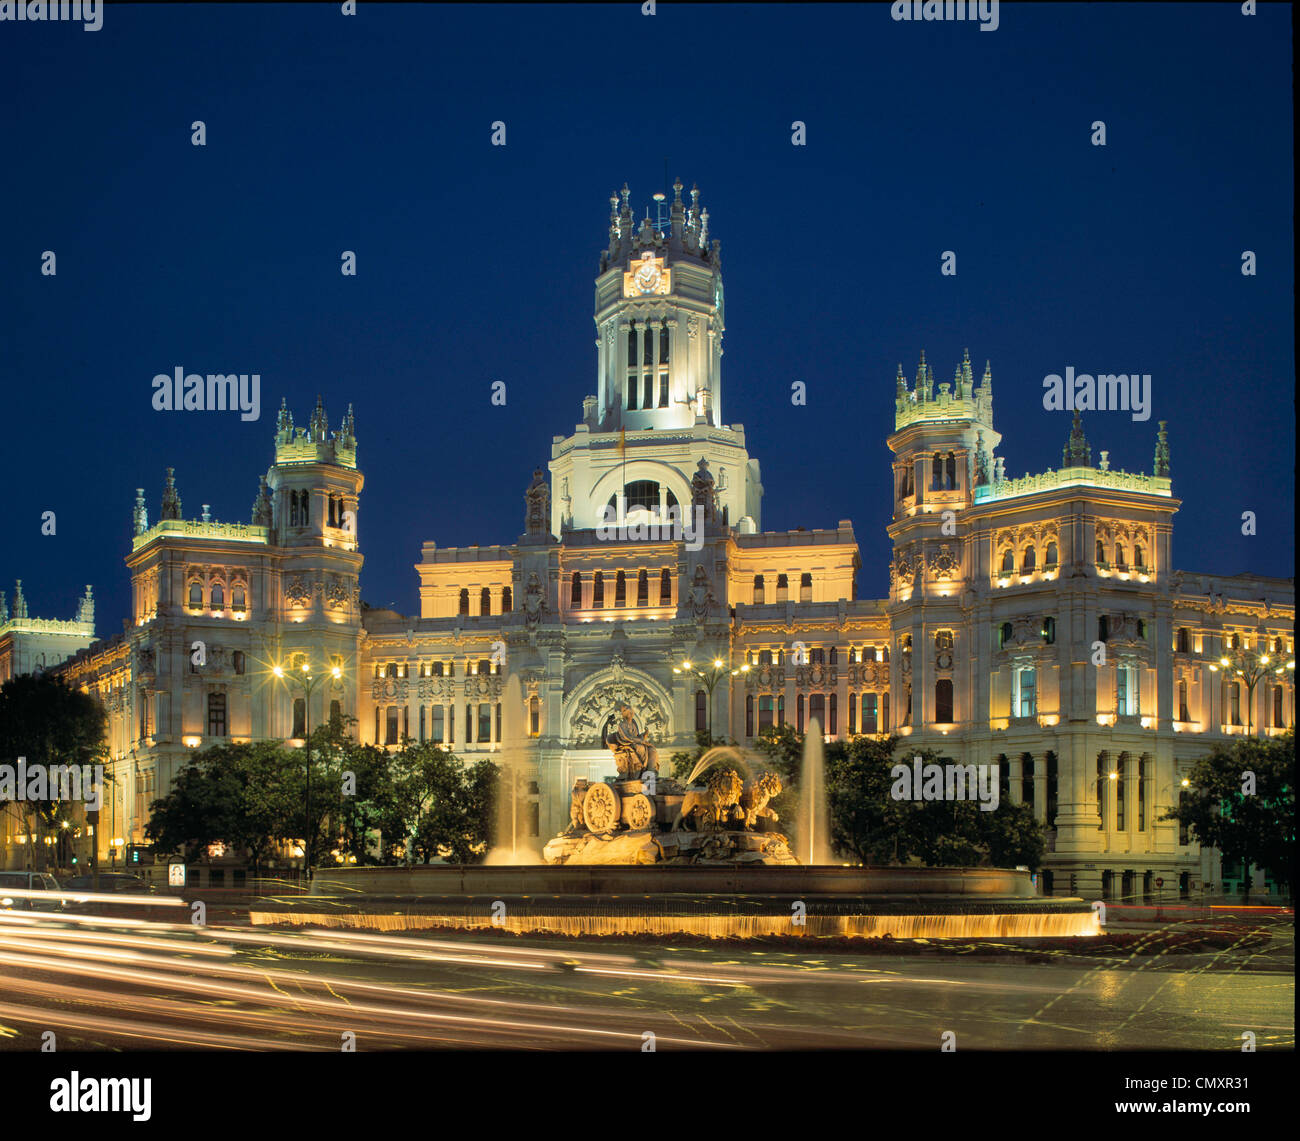 Main postal office at night, Plaza La Cibeles, Madrid, Spain - Stock Image